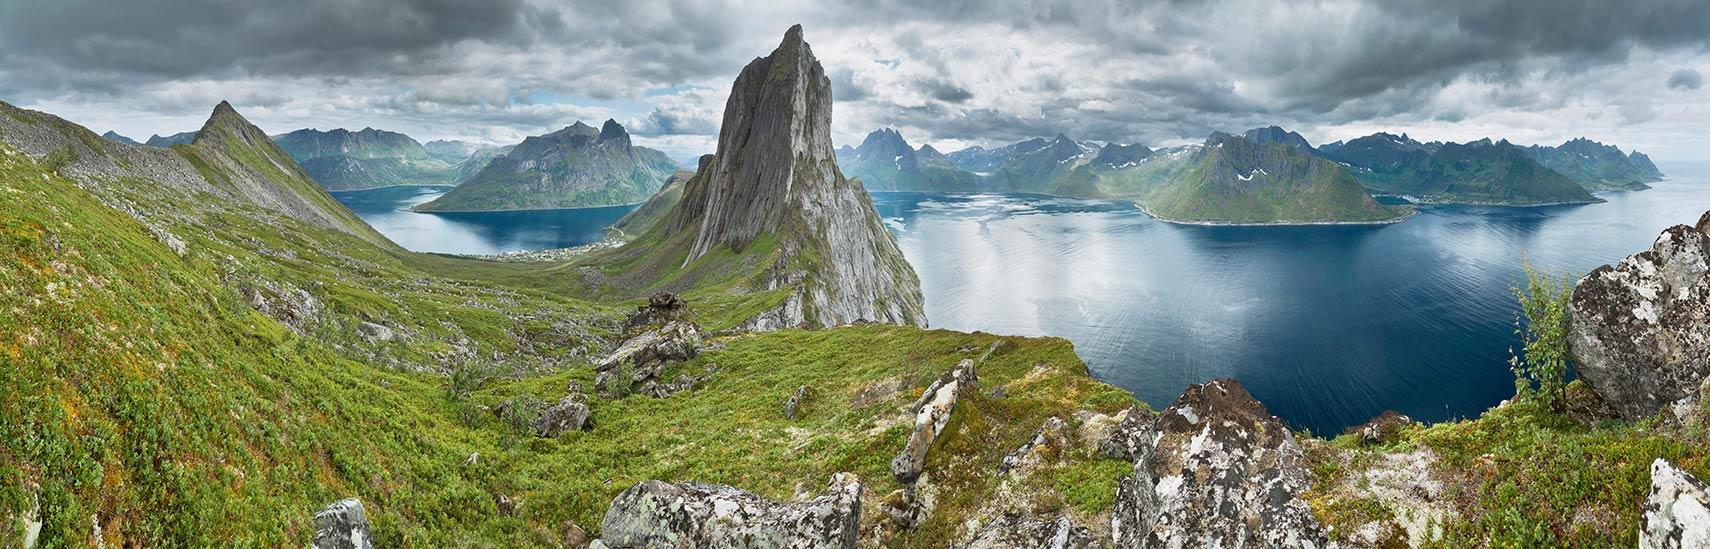 Panoramic view on Senja island, Troms county, Norway